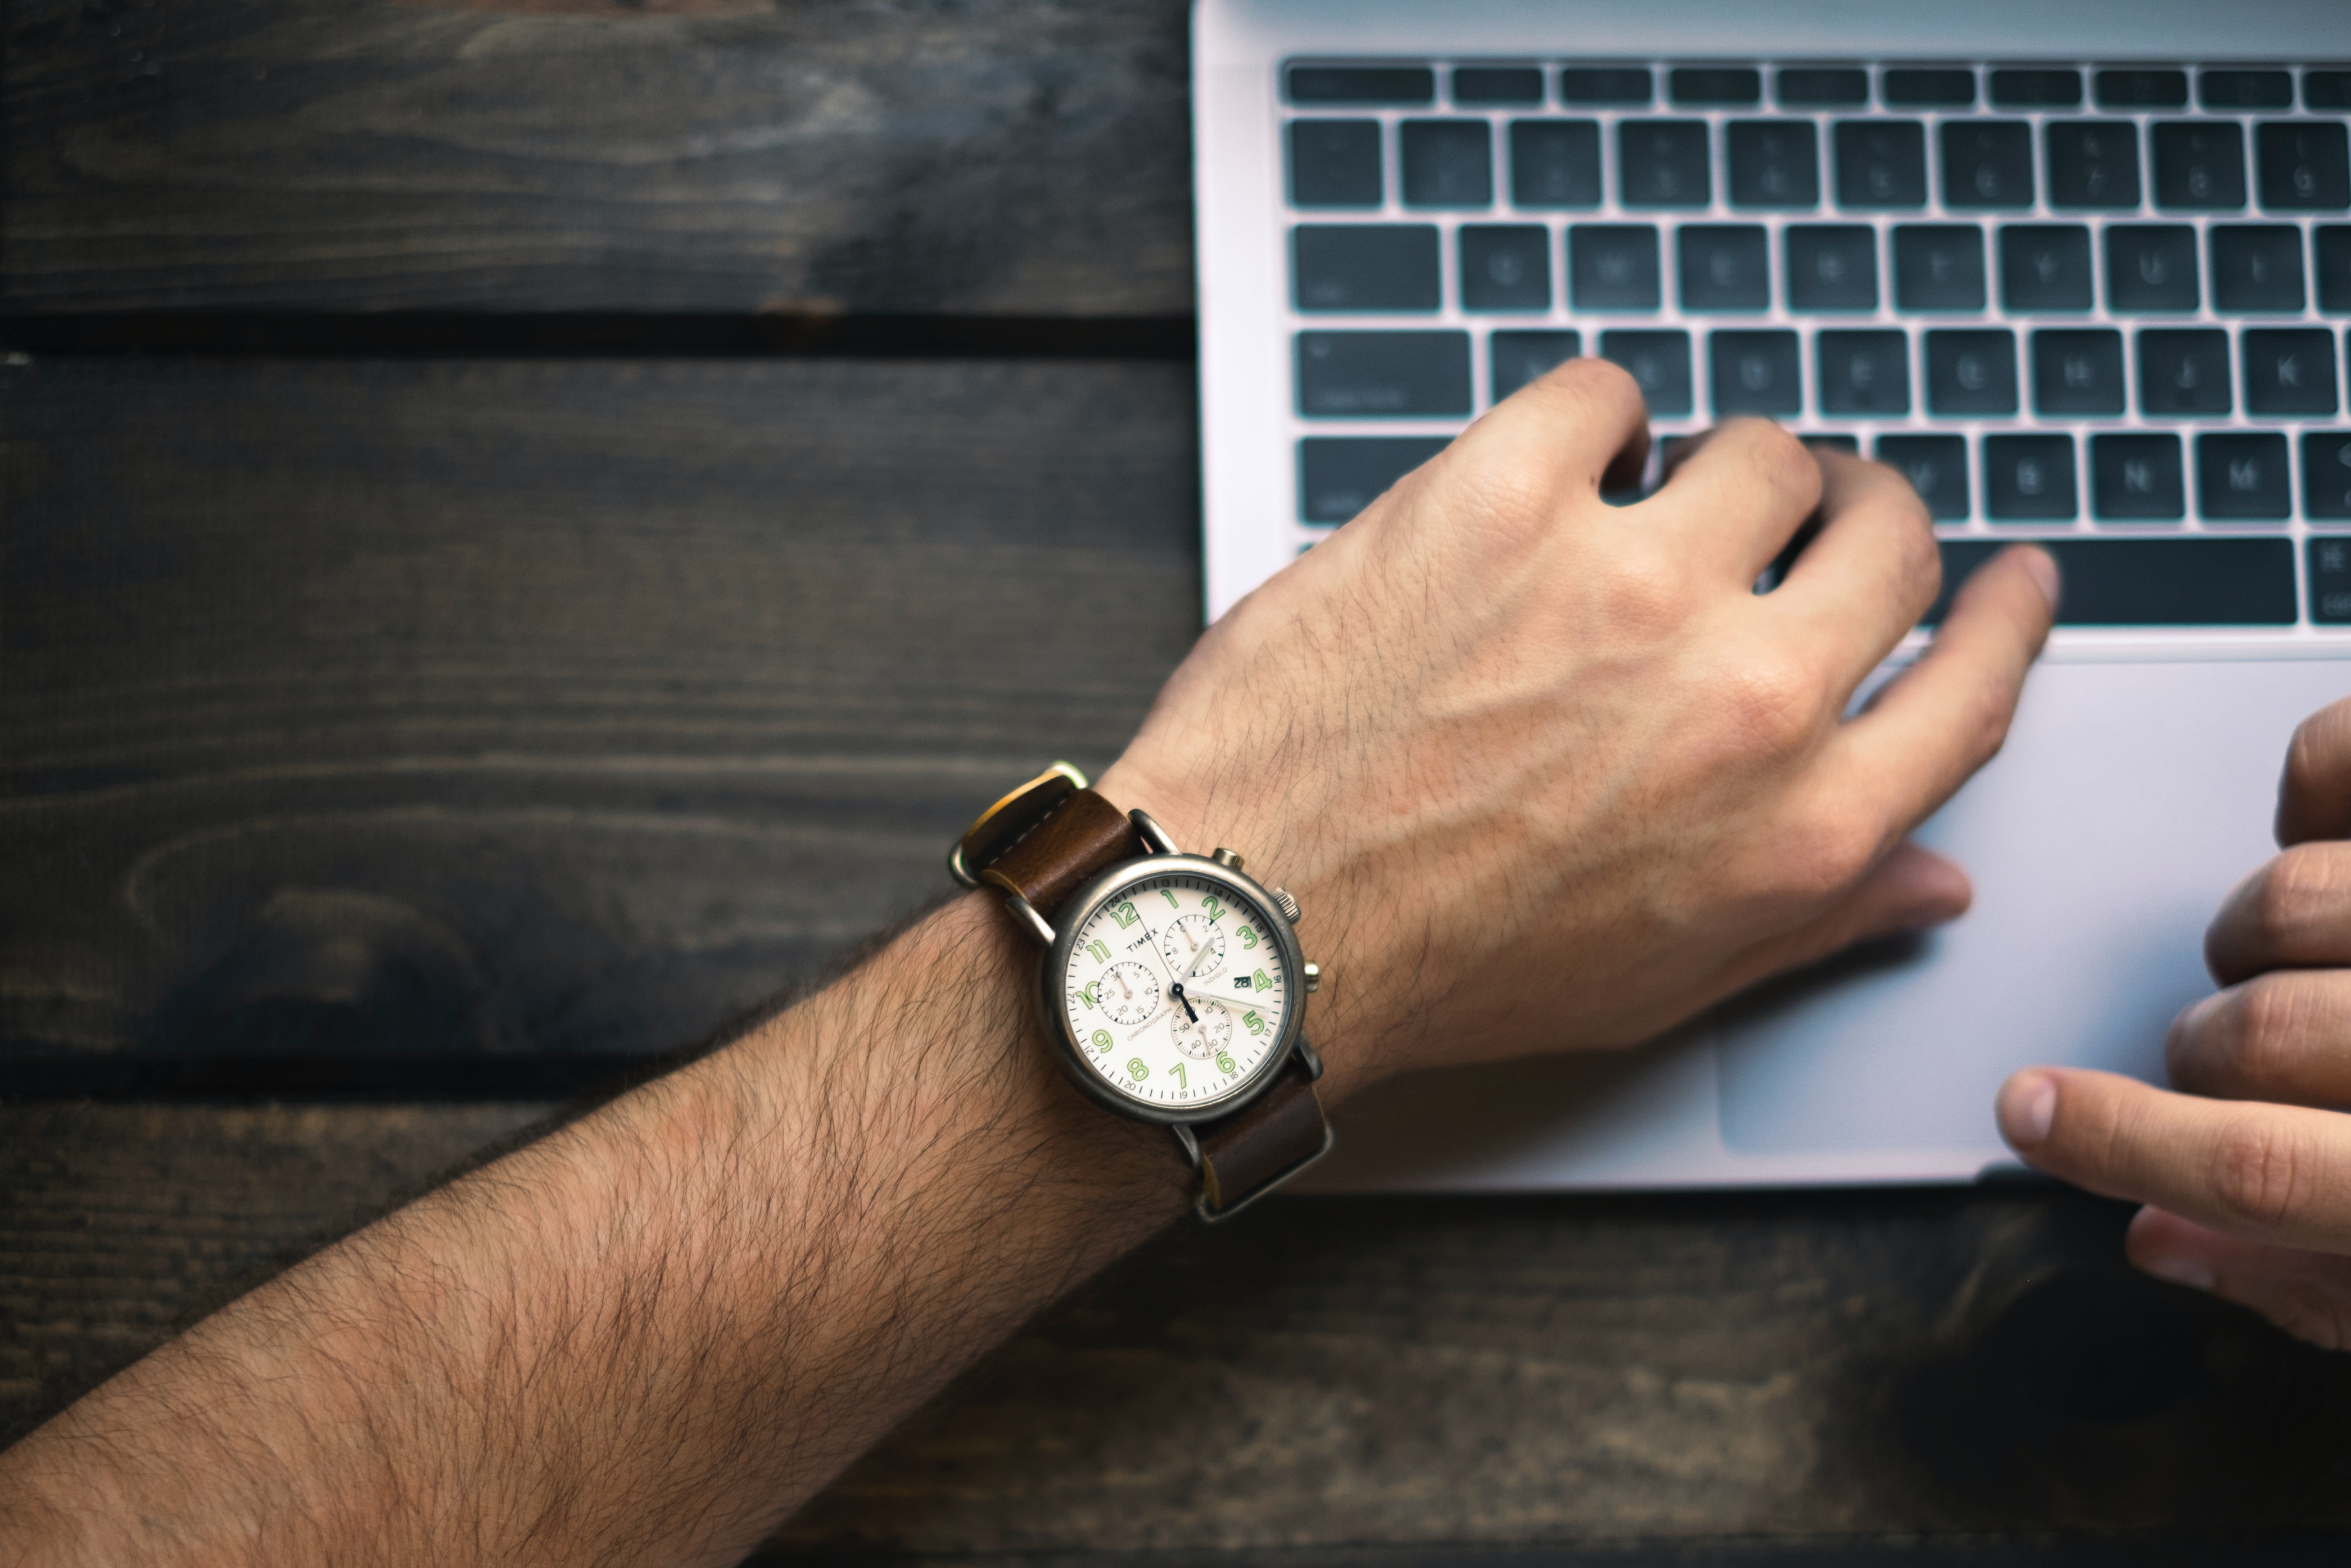 Laptop user looking at watch